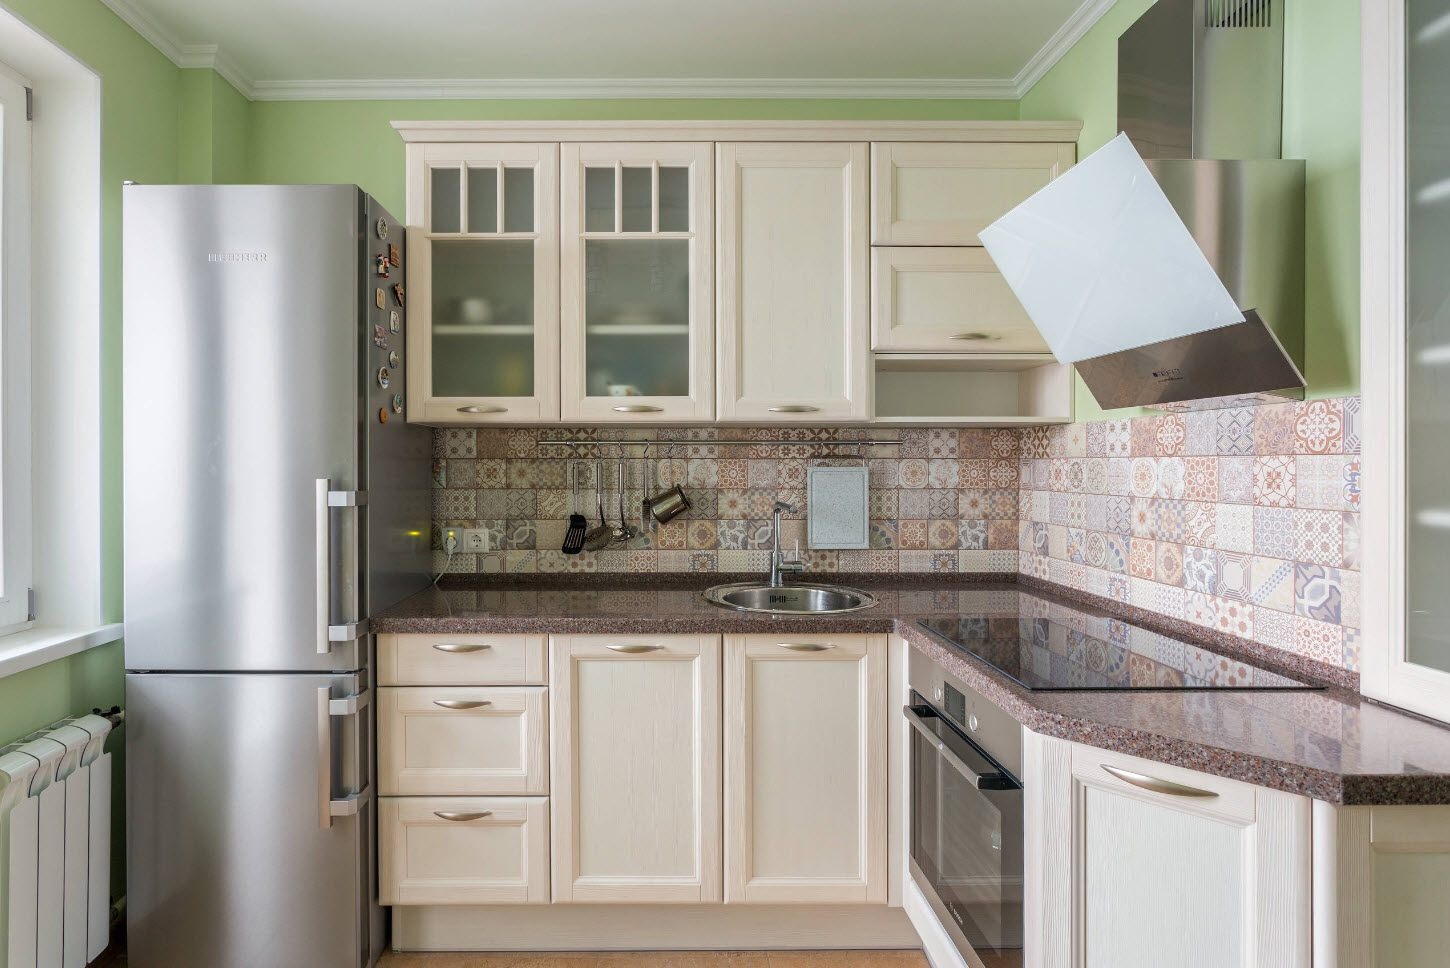 Sandy coloe tones for simple Classic designed kitchen furniture